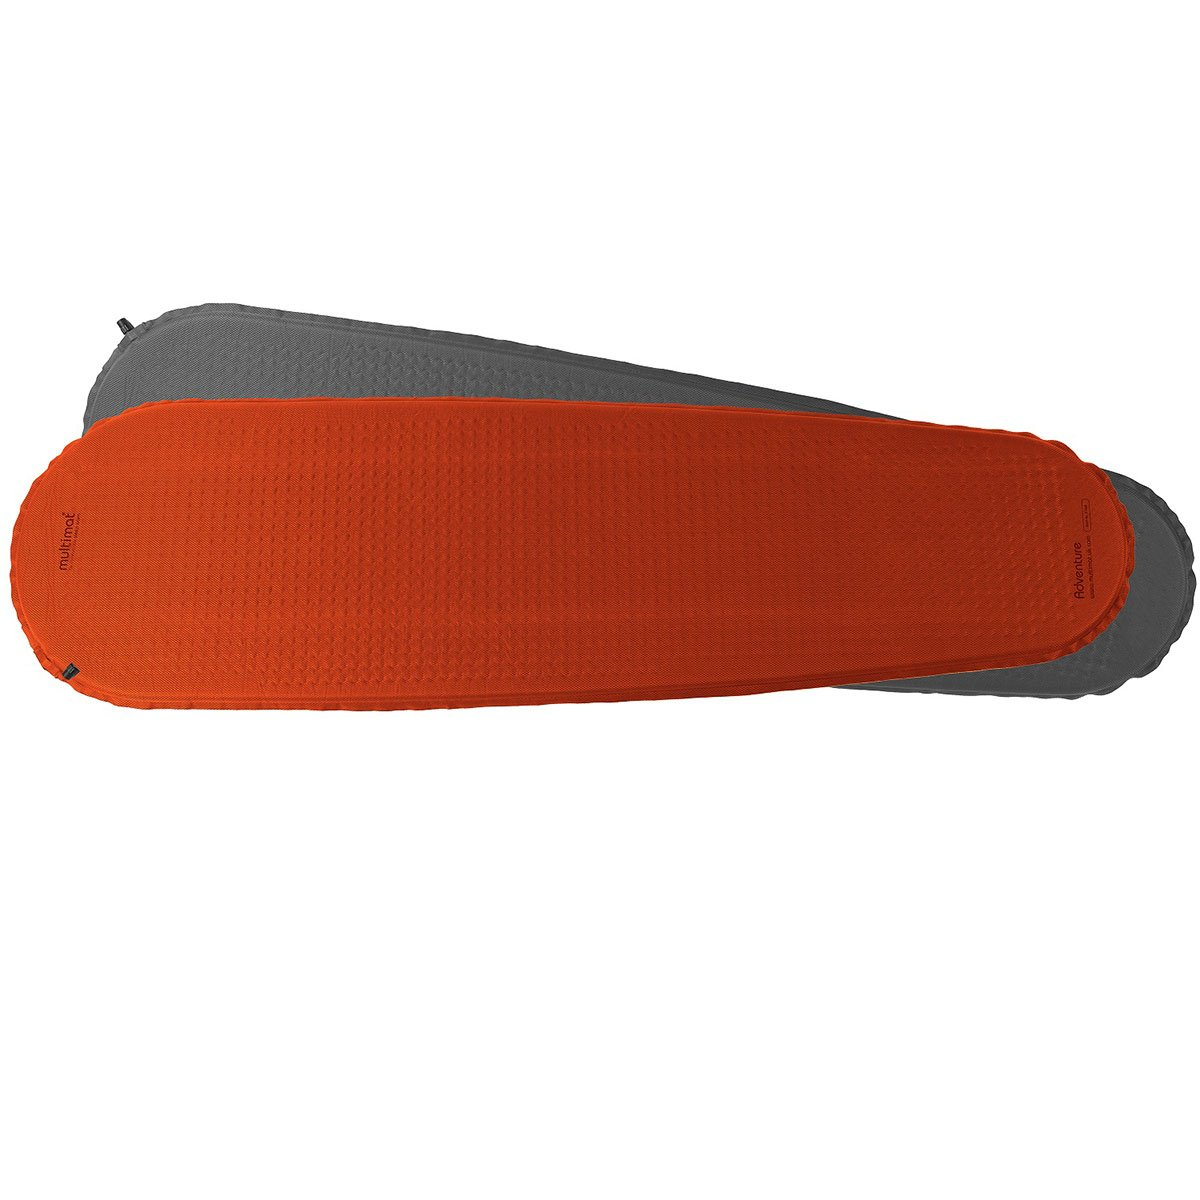 Multimat- Adventure Mat, Carrot/Charcoal